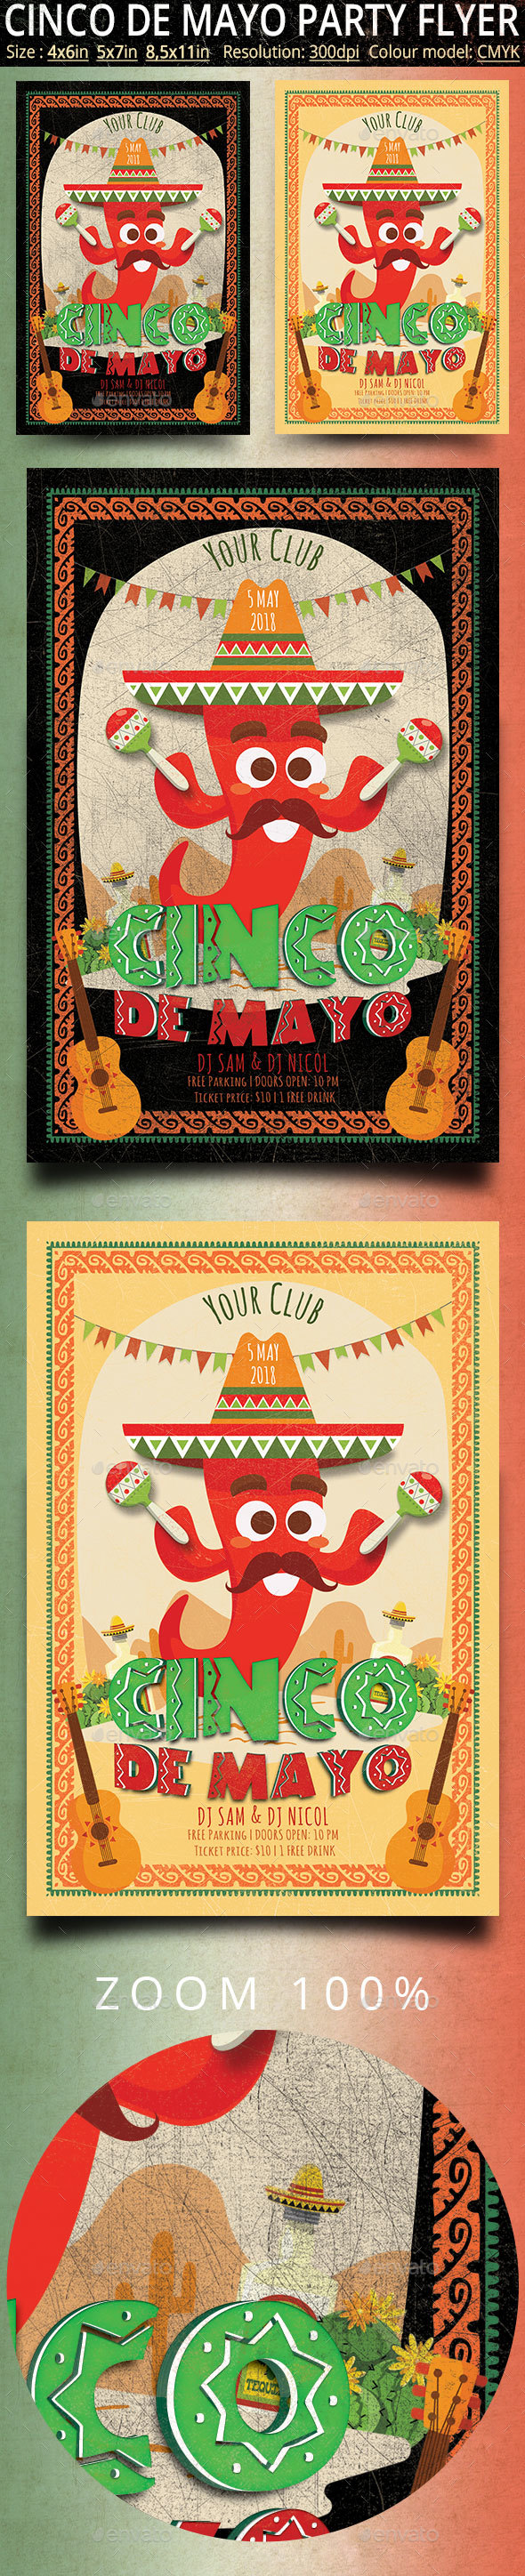 Cinco de Mayo Vintage Flyer And Poster - Events Flyers